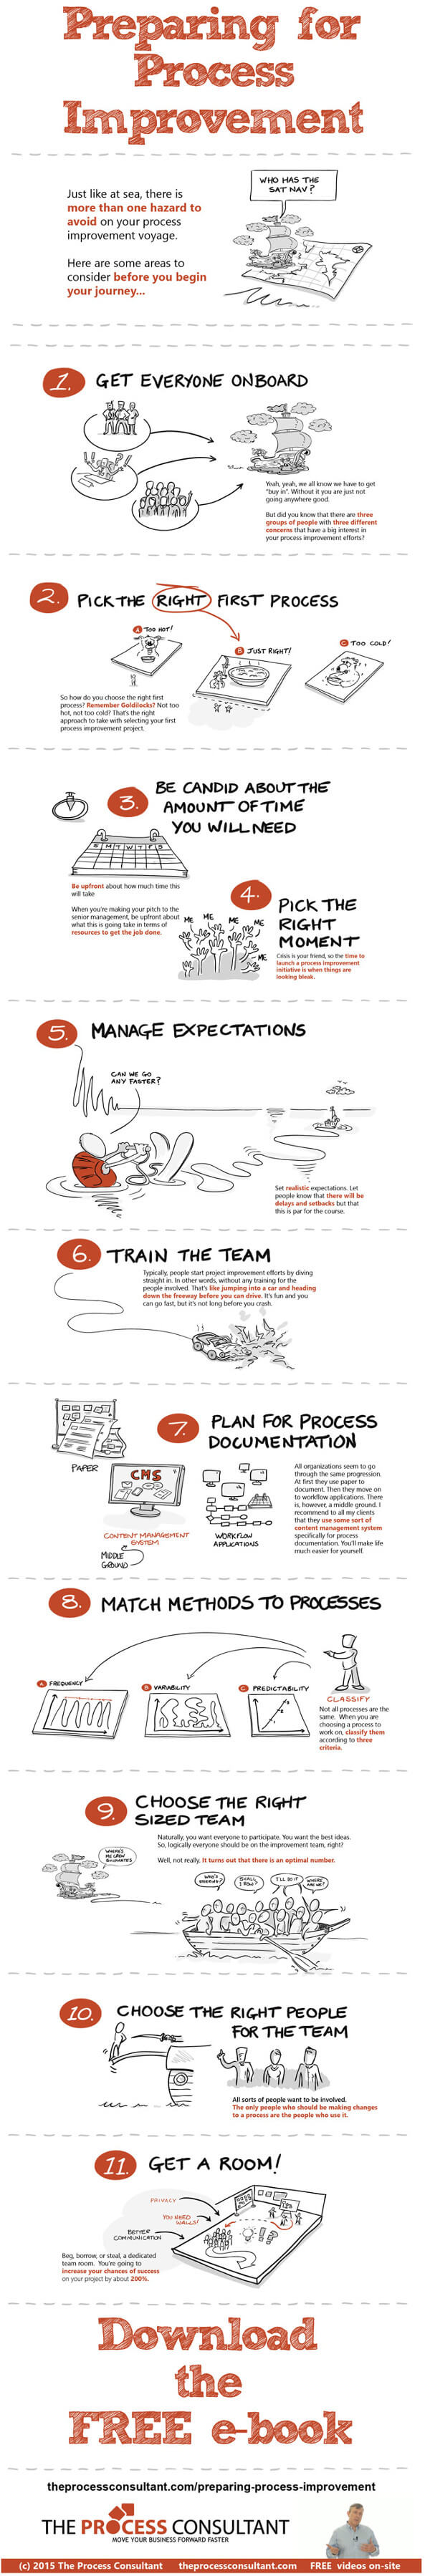 Process Improvement Preparations Infographic